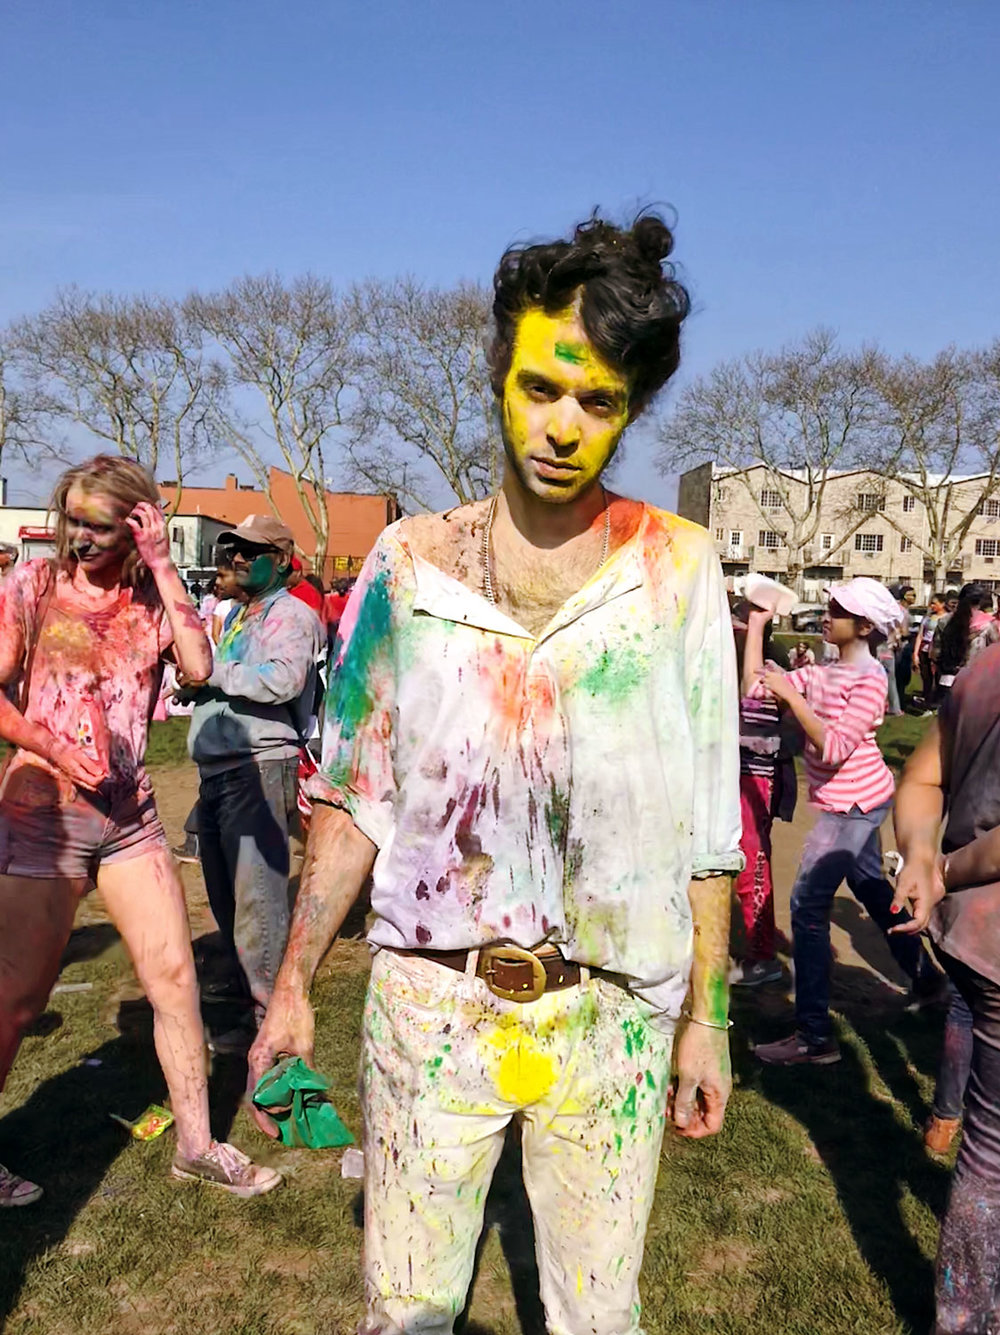 Paul James Read,  adorned in the vibrant colors of Holi, contributes to the celebration with his own Green throwing powder.